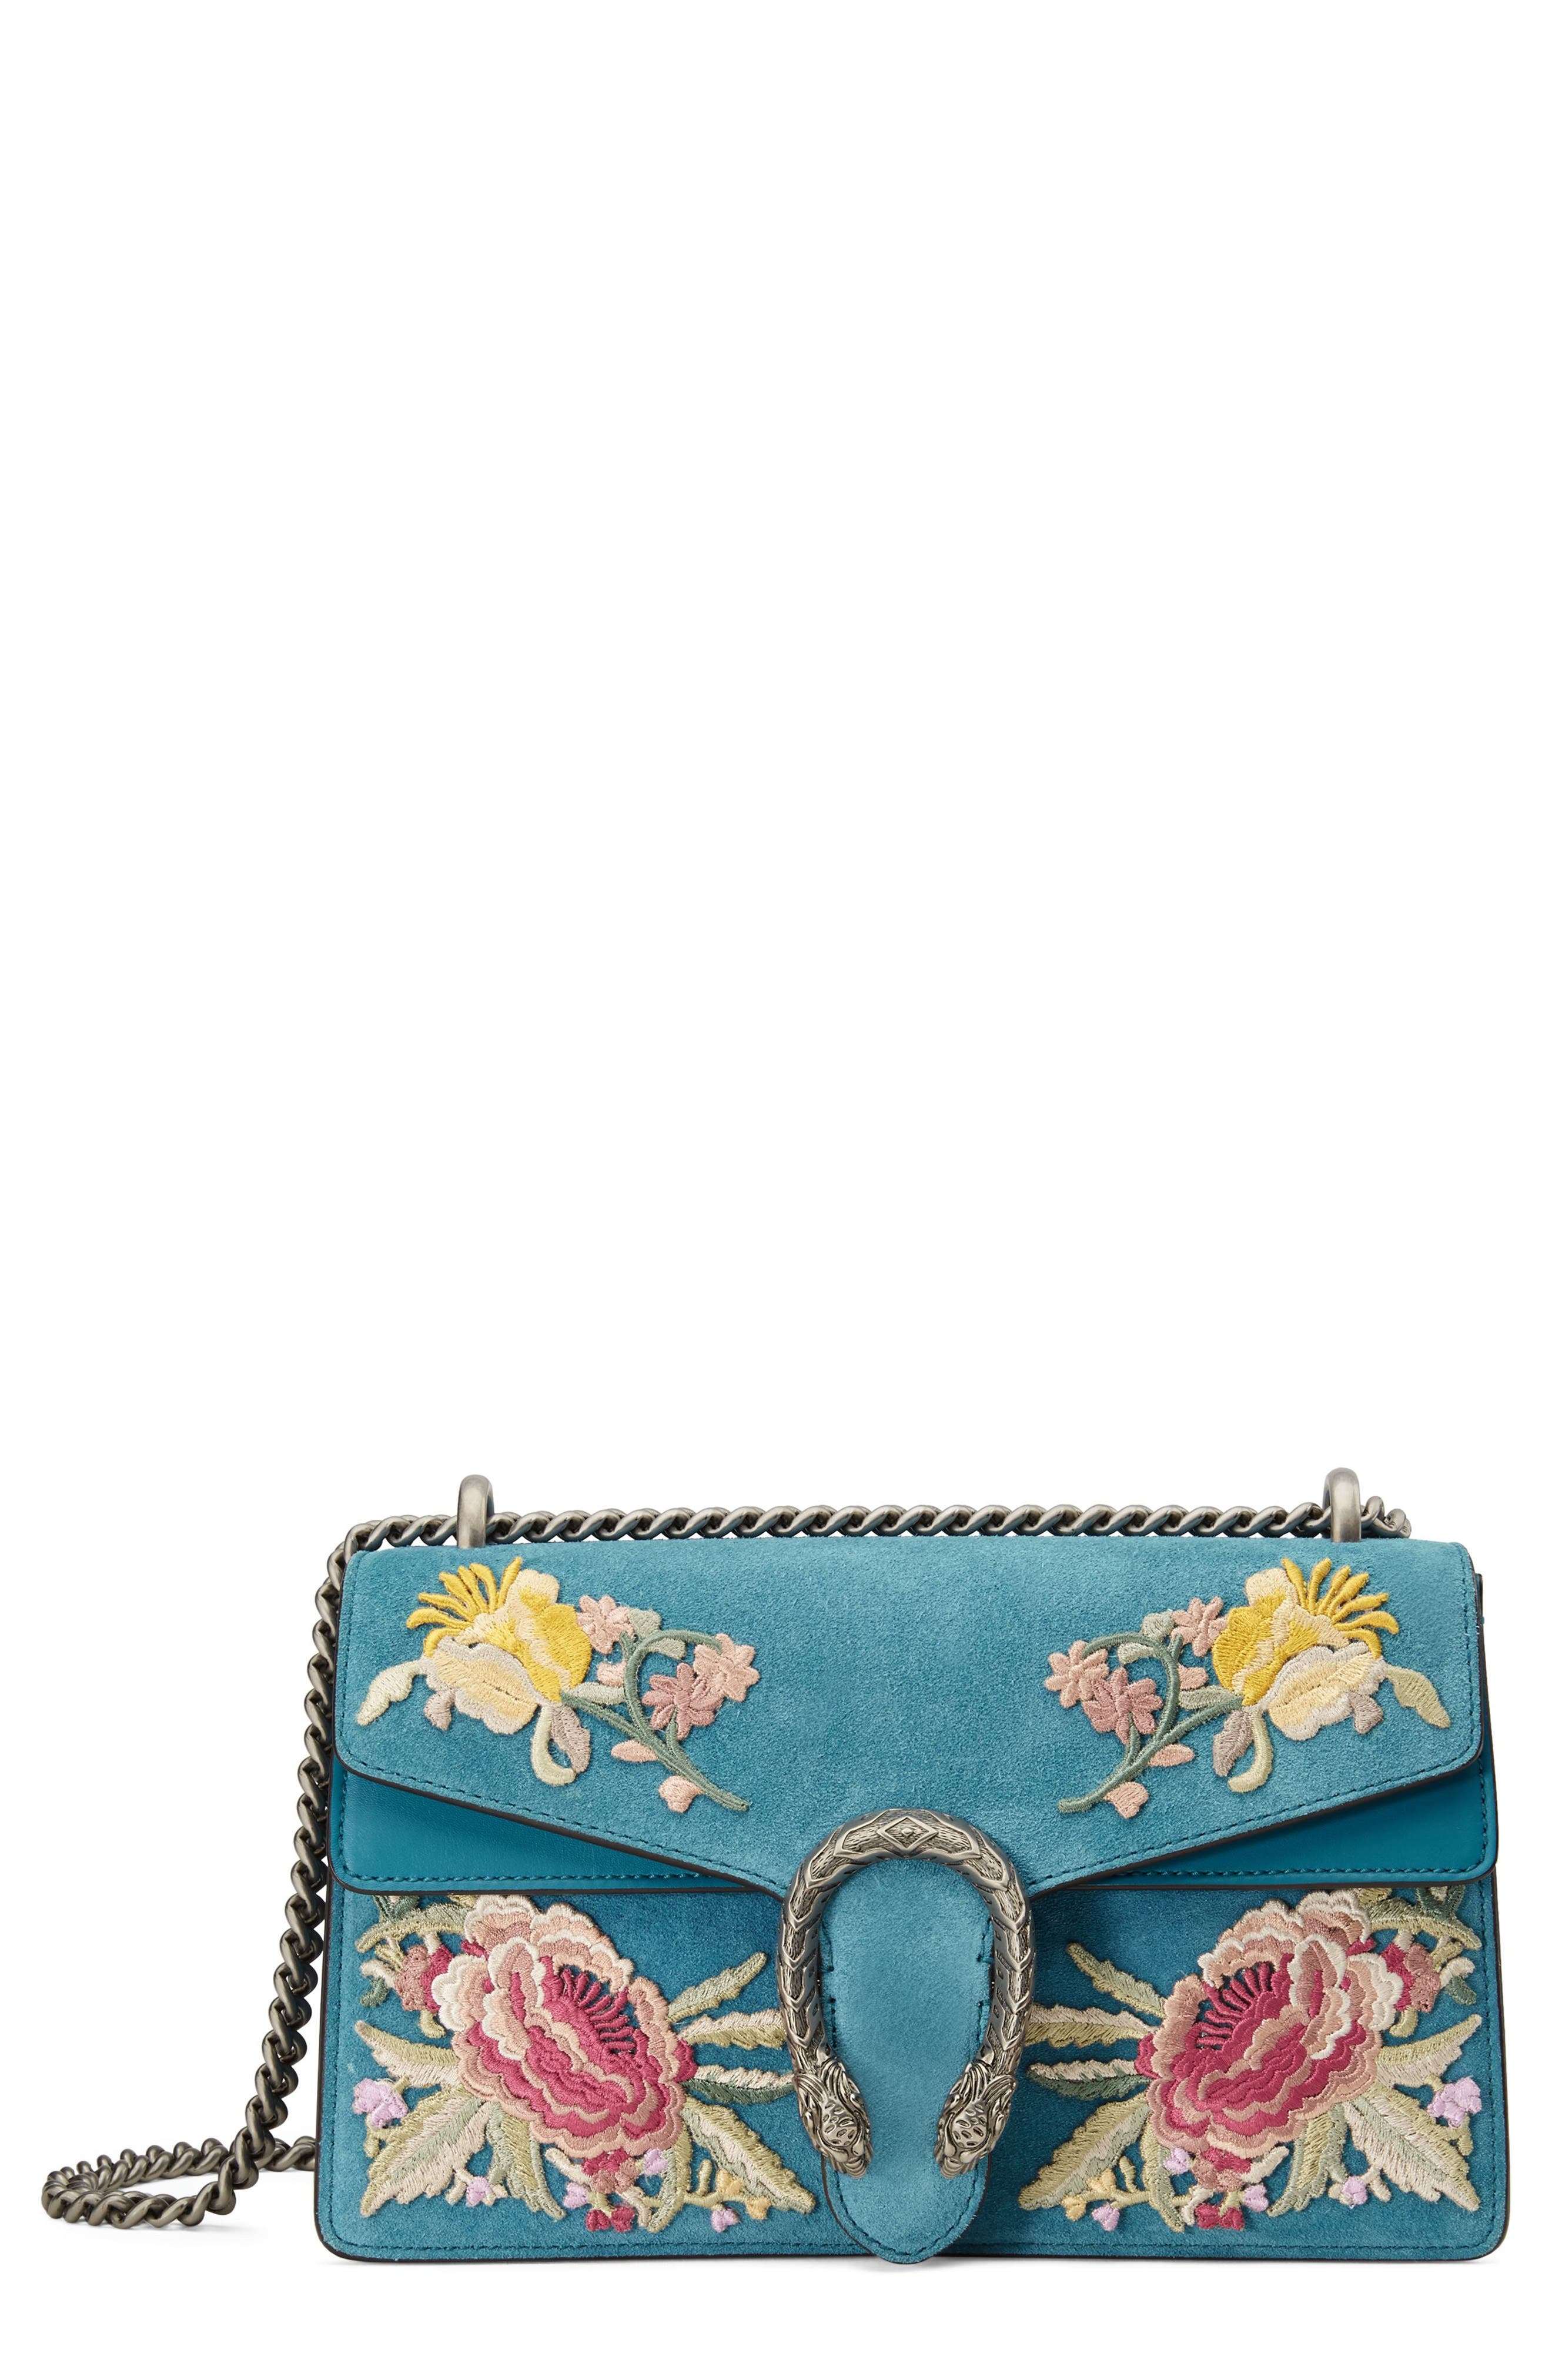 Small Dionysus Embroidered Suede Shoulder Bag,                         Main,                         color, 493